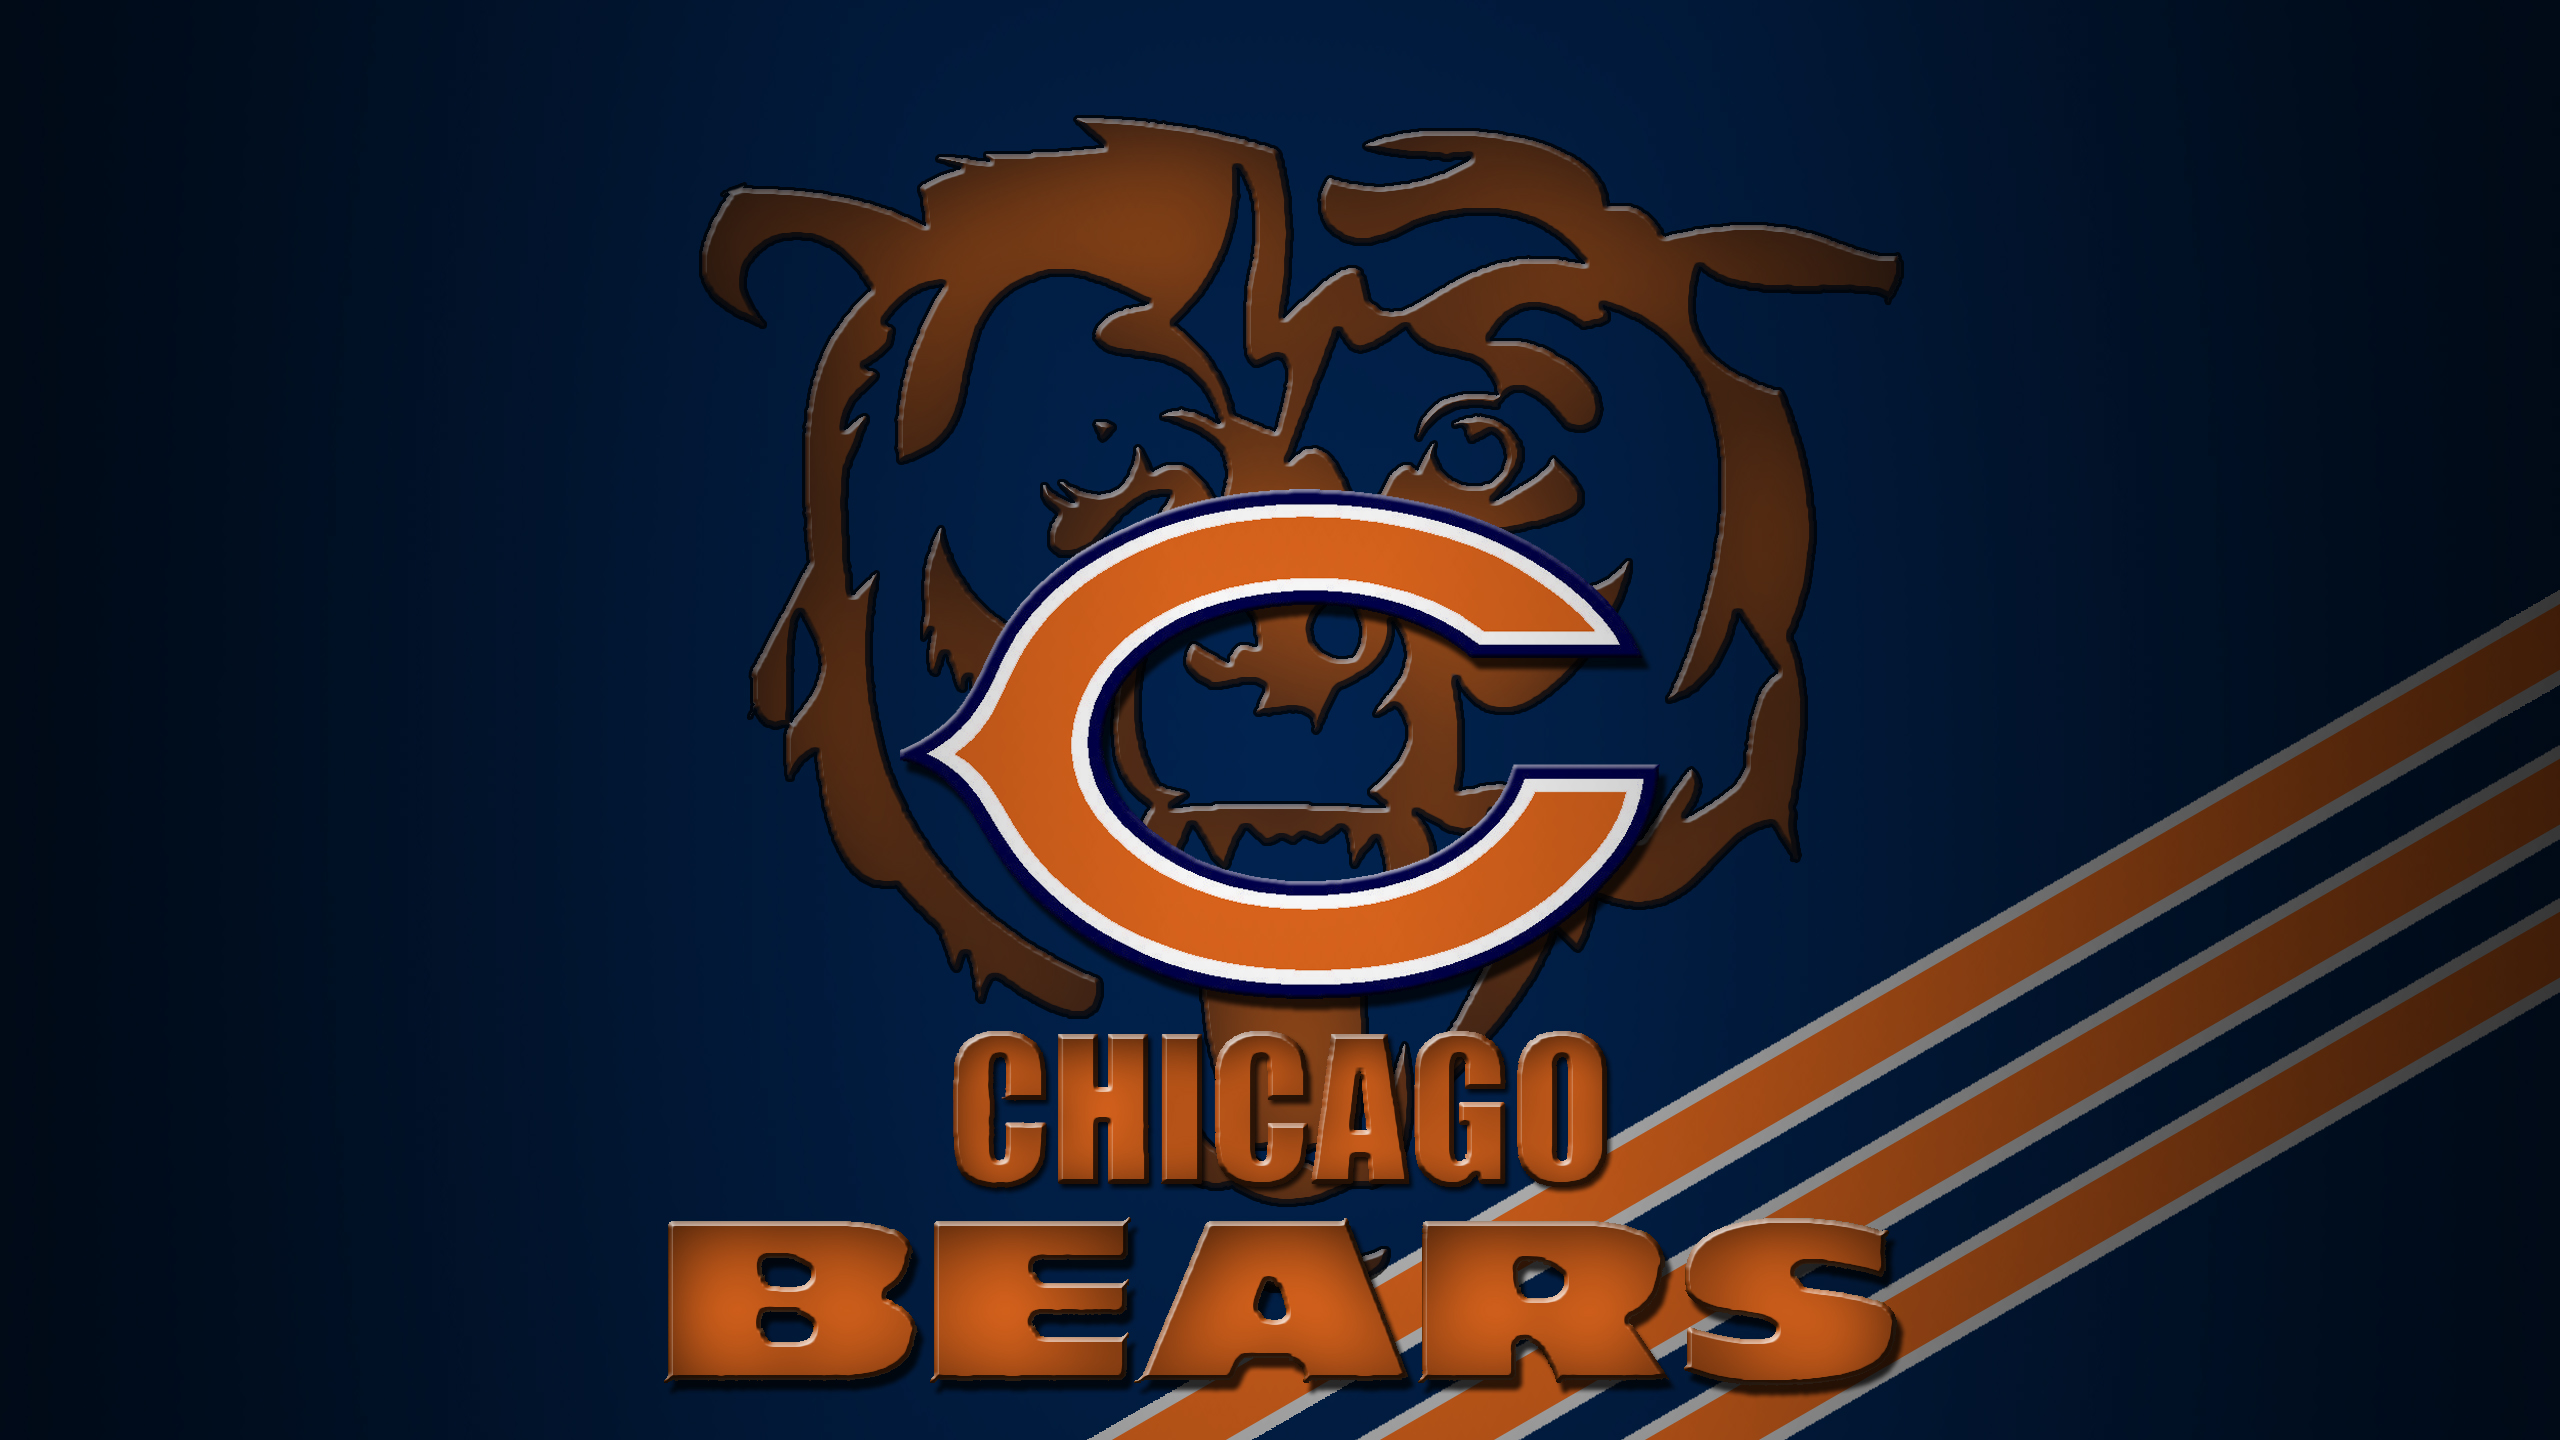 Chicago Bears By Beaware8 On Deviantart